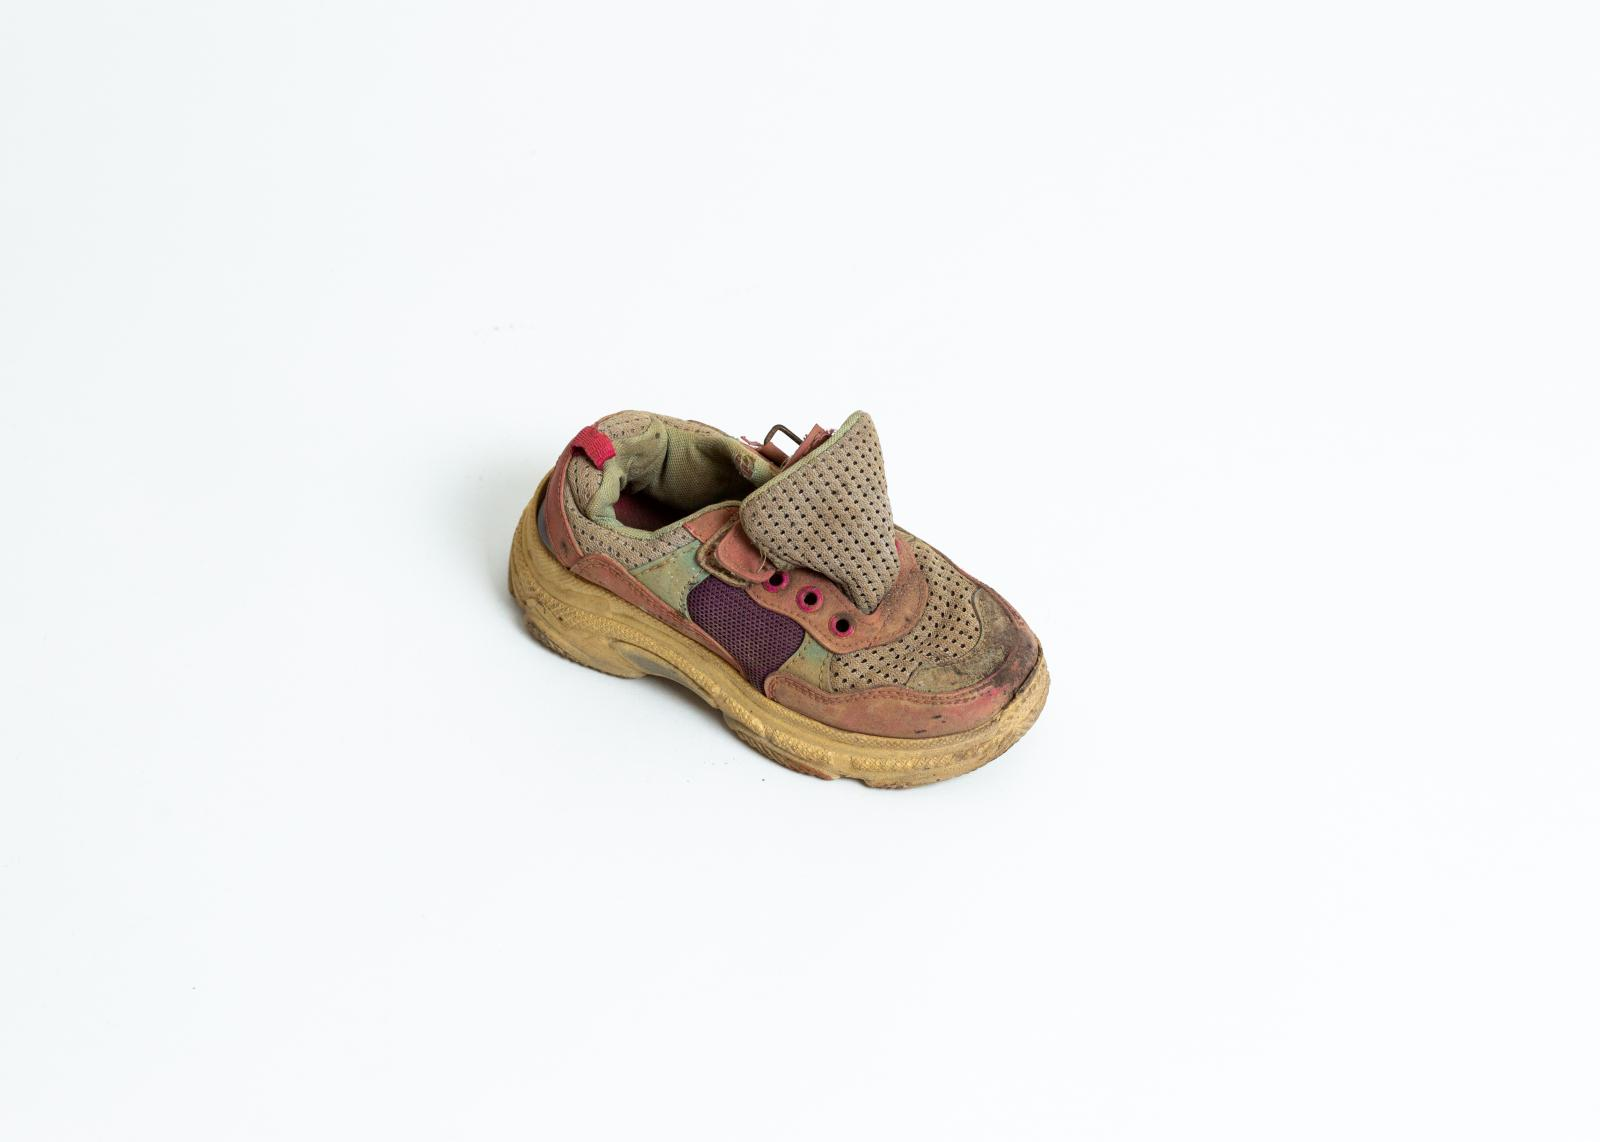 The shoe of a minor. 40% of Morias 13.000 residents are minors, with seven out of ten under the age of twelve. They are particularly vulnerable, many experience mental health issues including self-harm and attempted suicide.